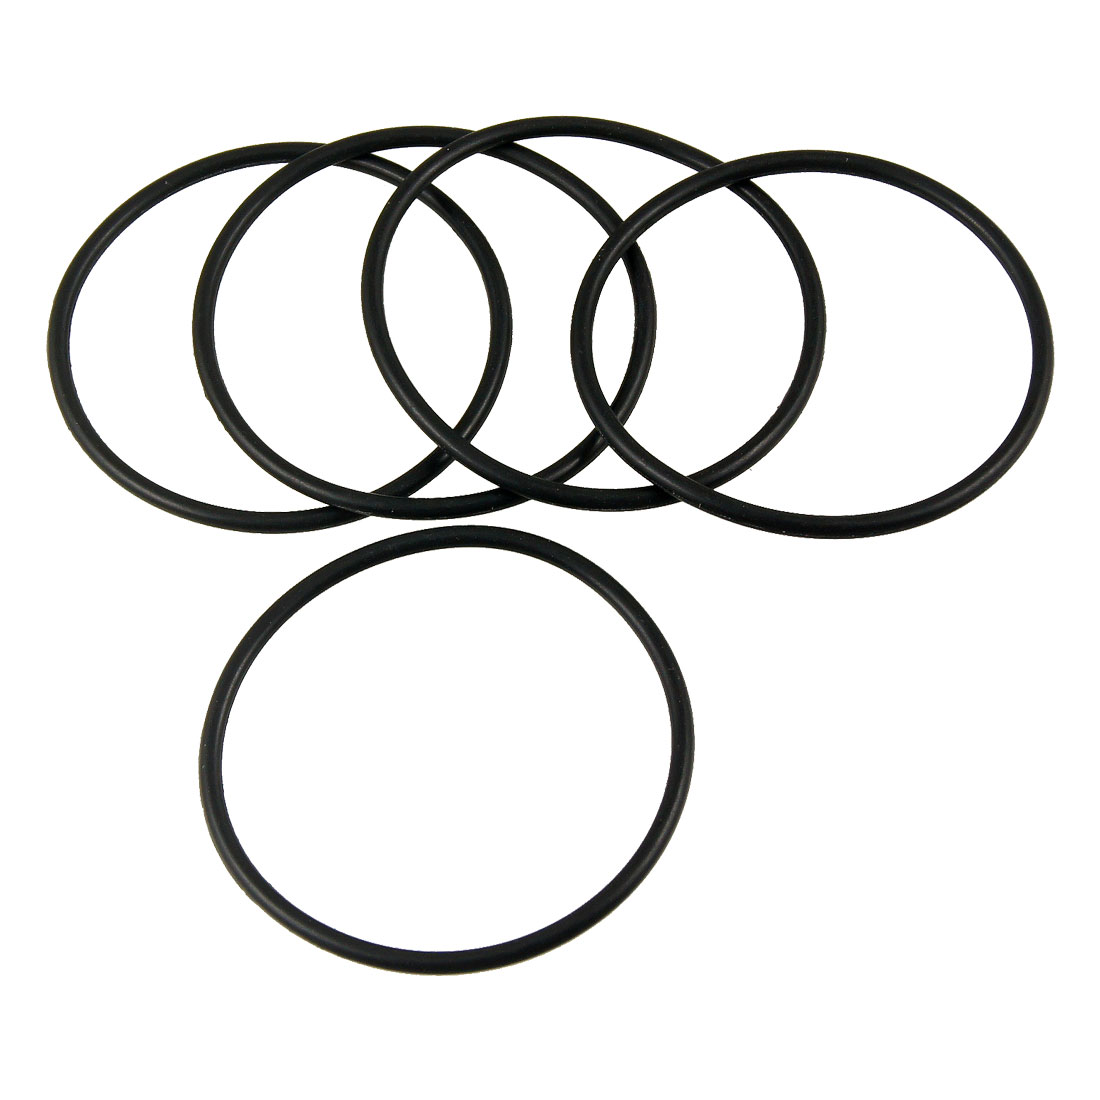 5 PCS 52mm x 2.4mm Rubber Sealing Oil Filter O Rings Gaskets